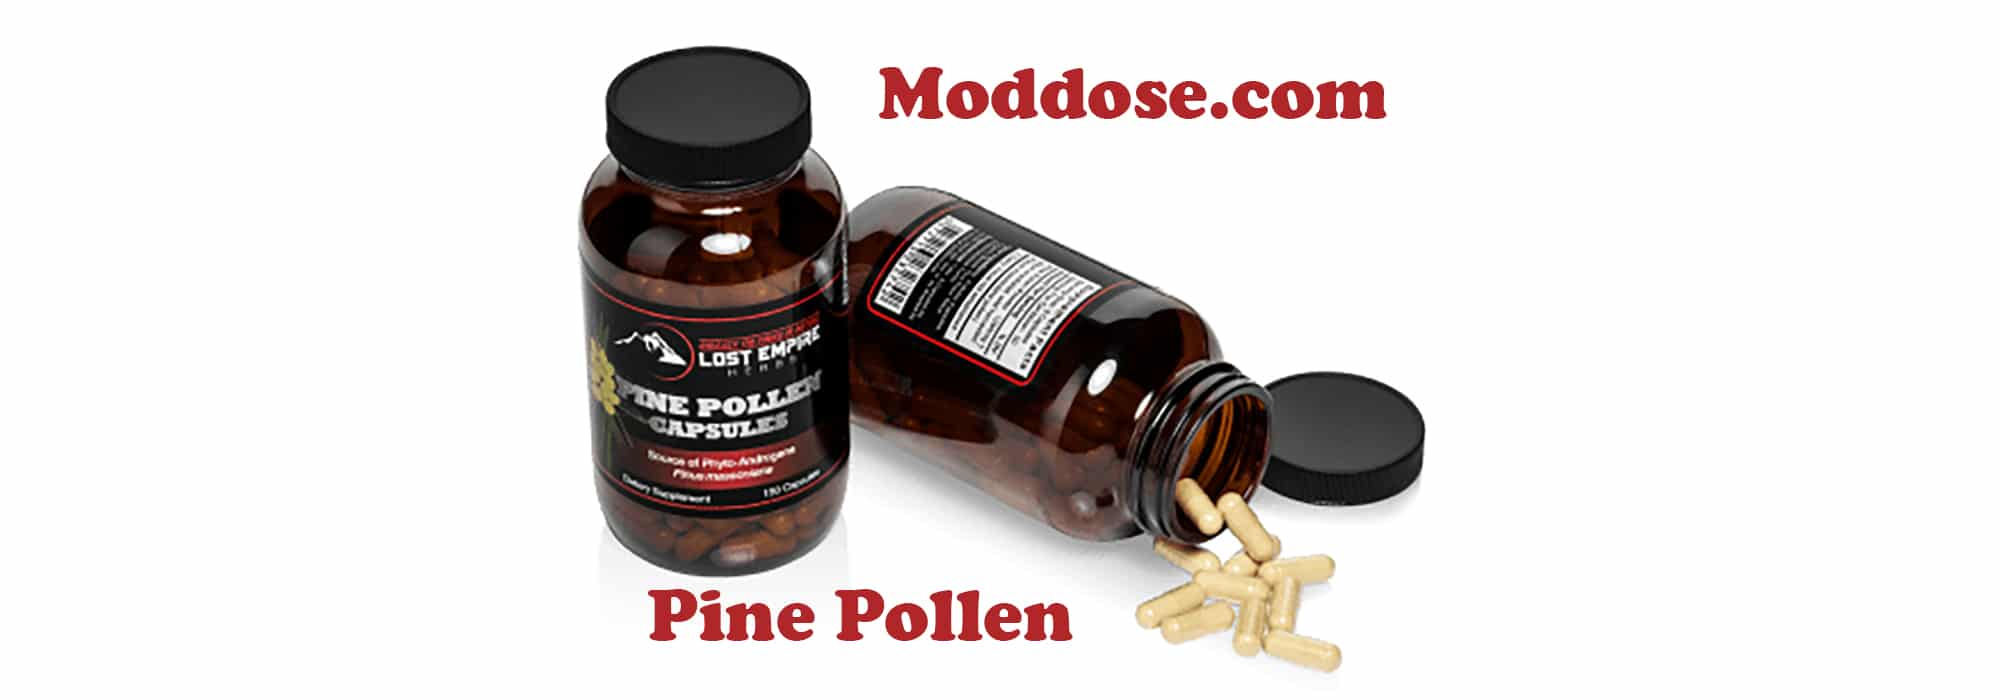 What is Pine Pollen